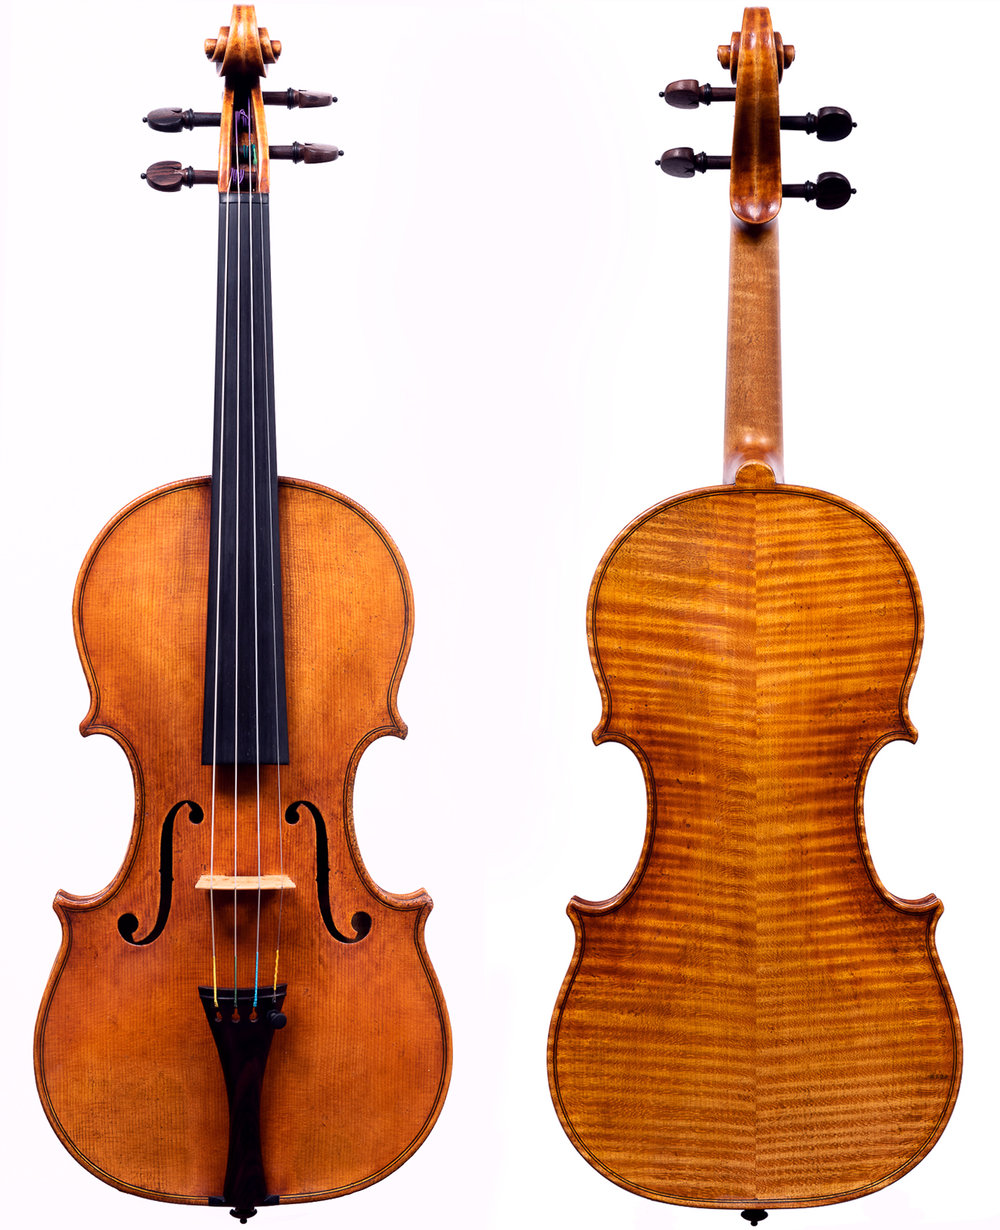 McLaughlinViolinLY.jpg